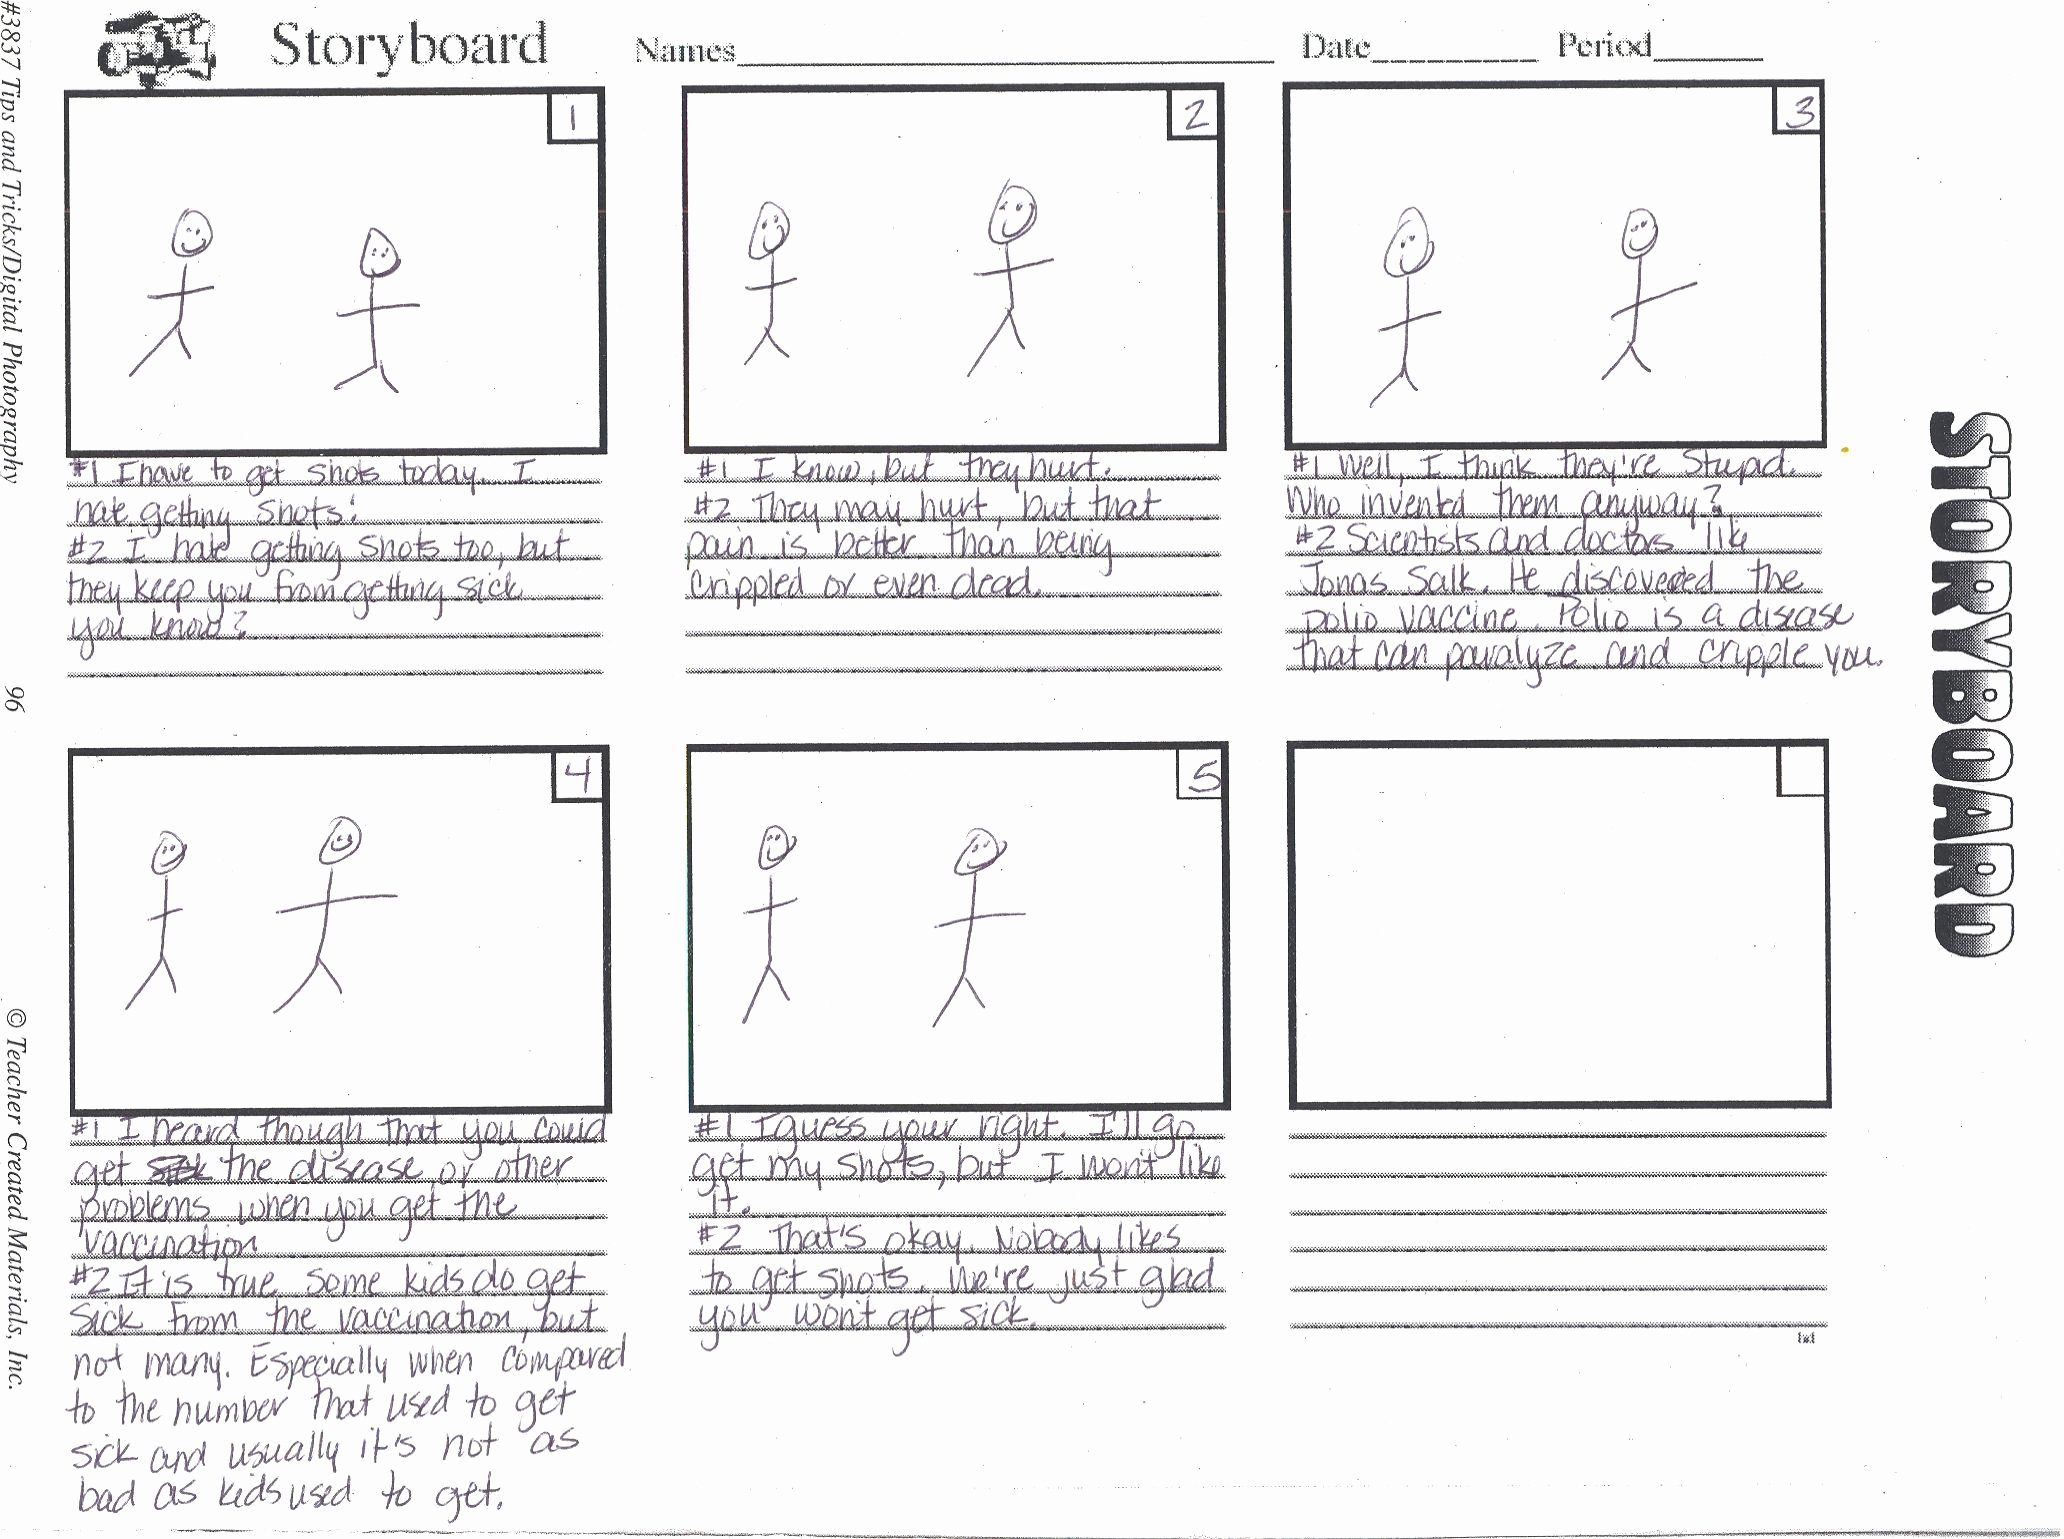 Professional Film Storyboard Template Lovely 40 Professional Storyboard Templates & Examples – Y Arts